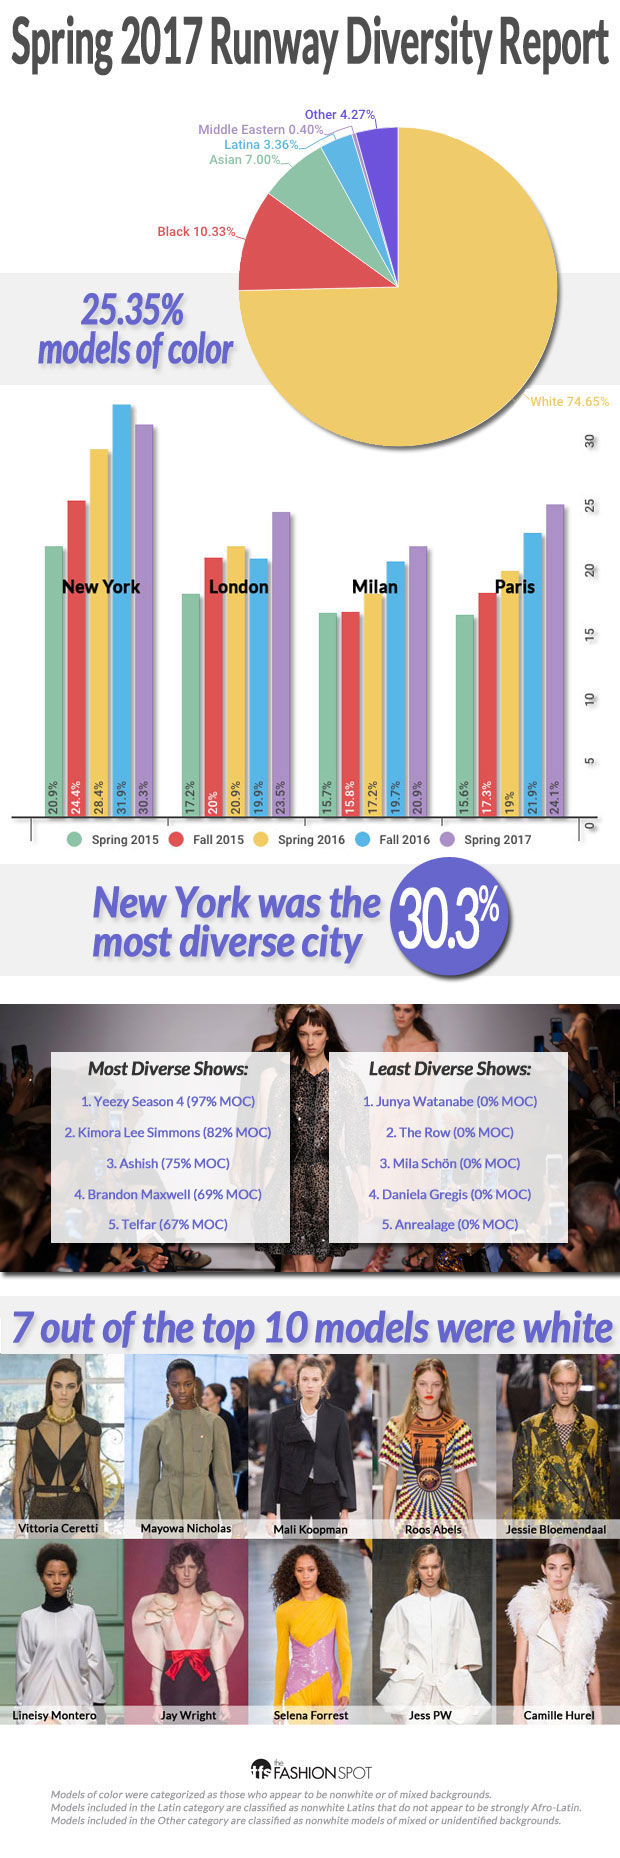 diversity report spring 2017 runways were most diverse in history